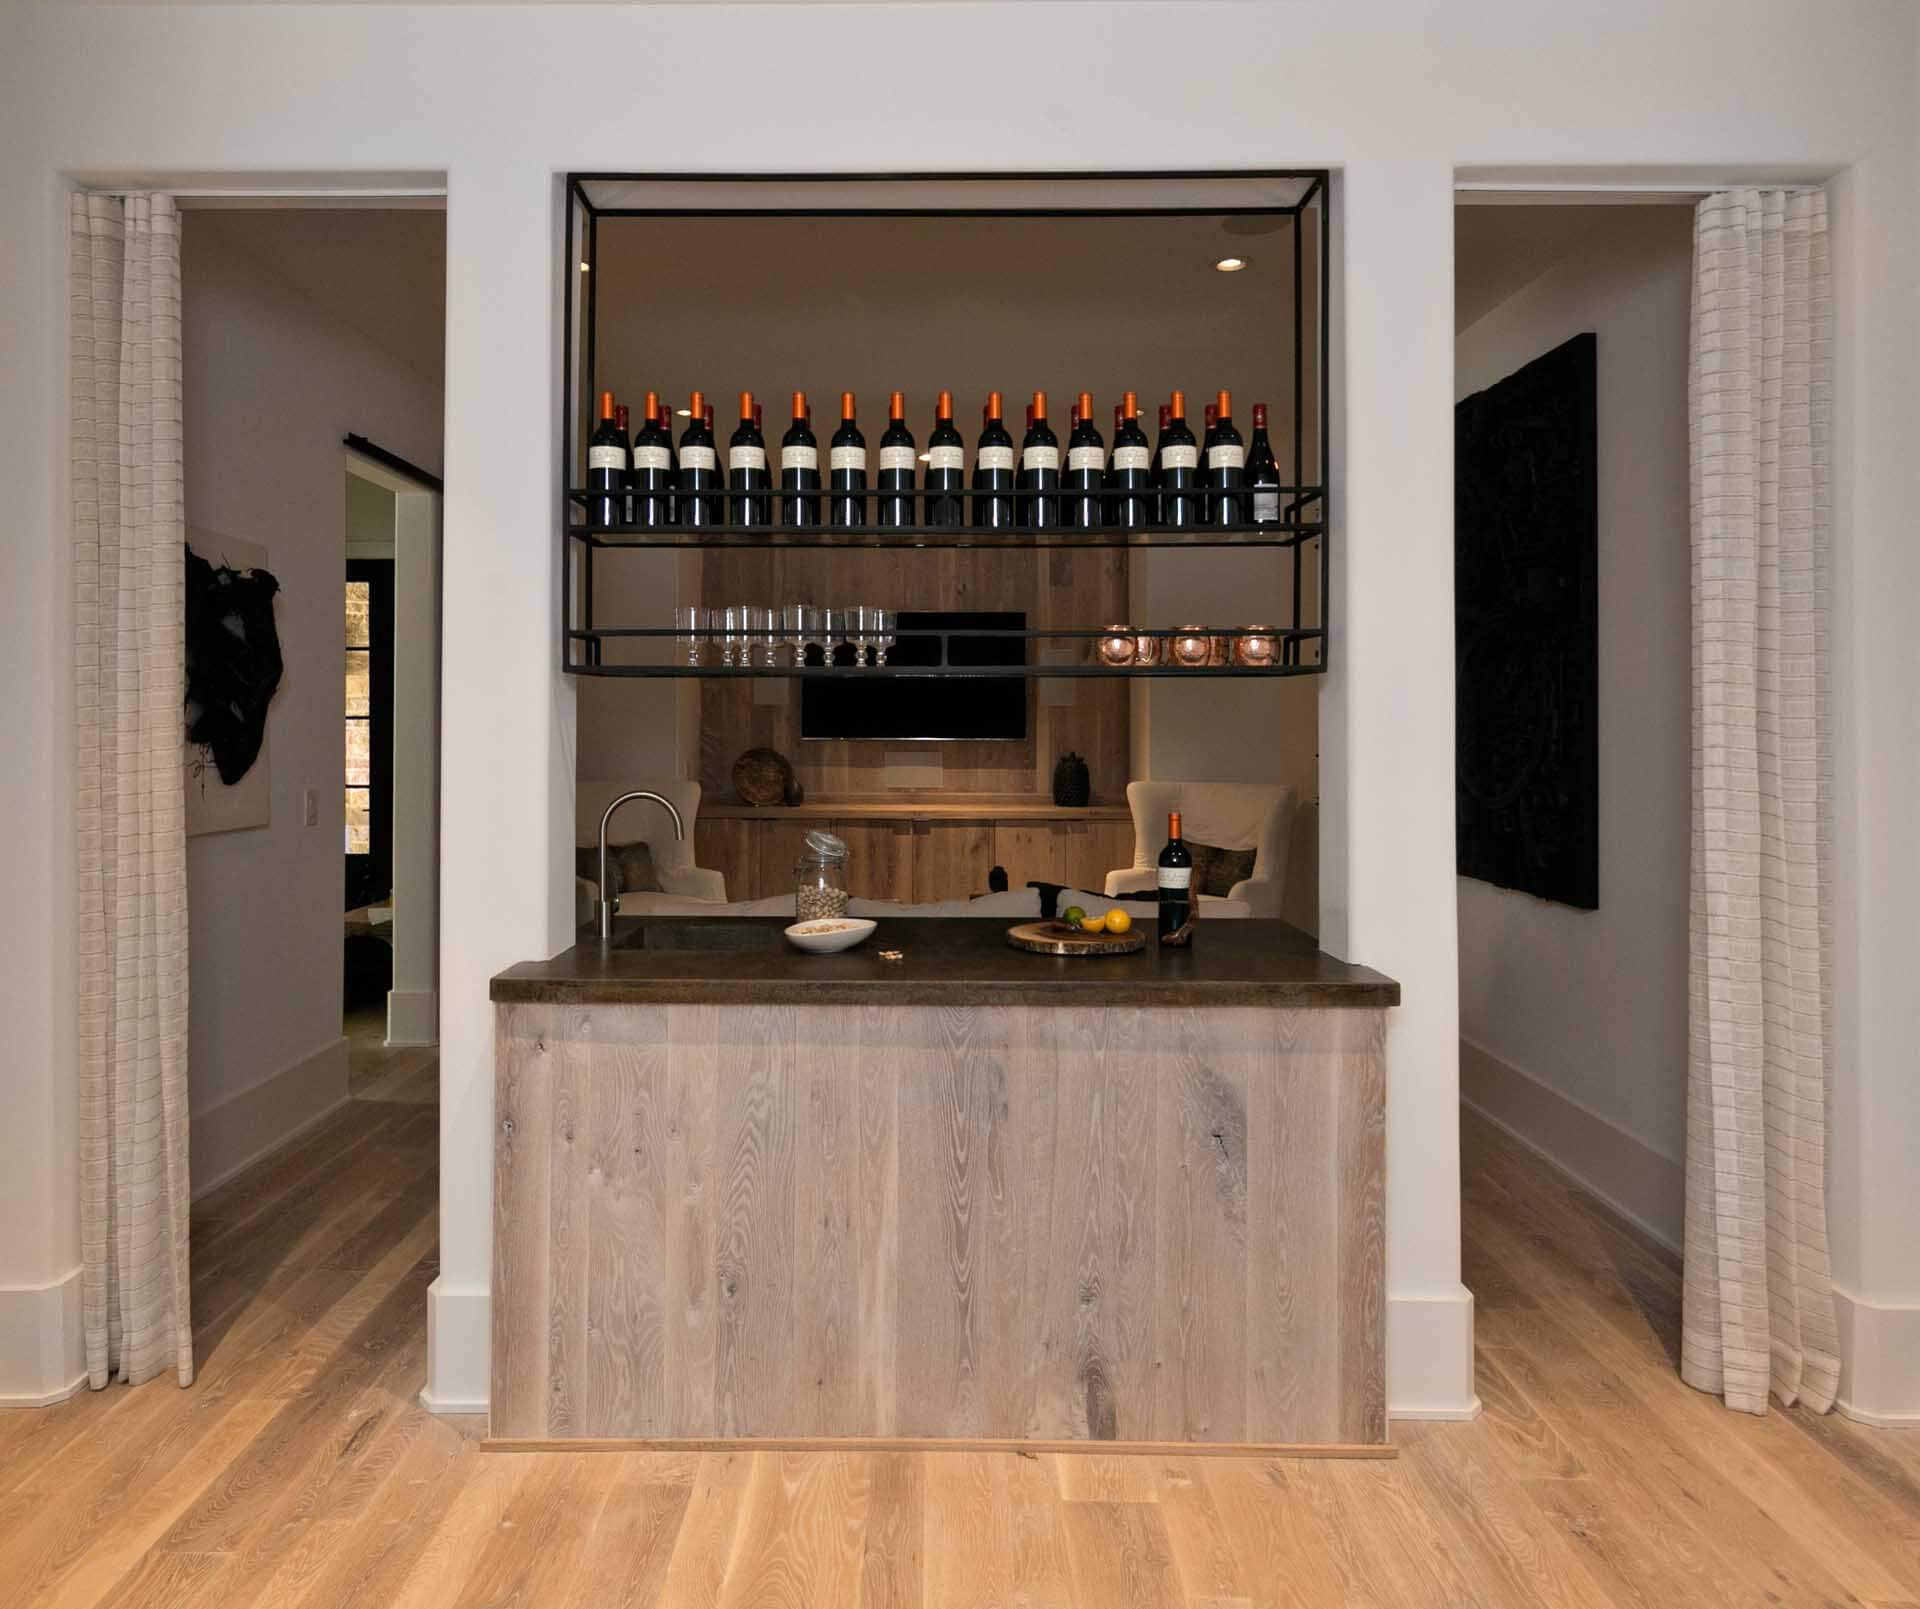 A white oak wet bar in a home with hardwood flooring.